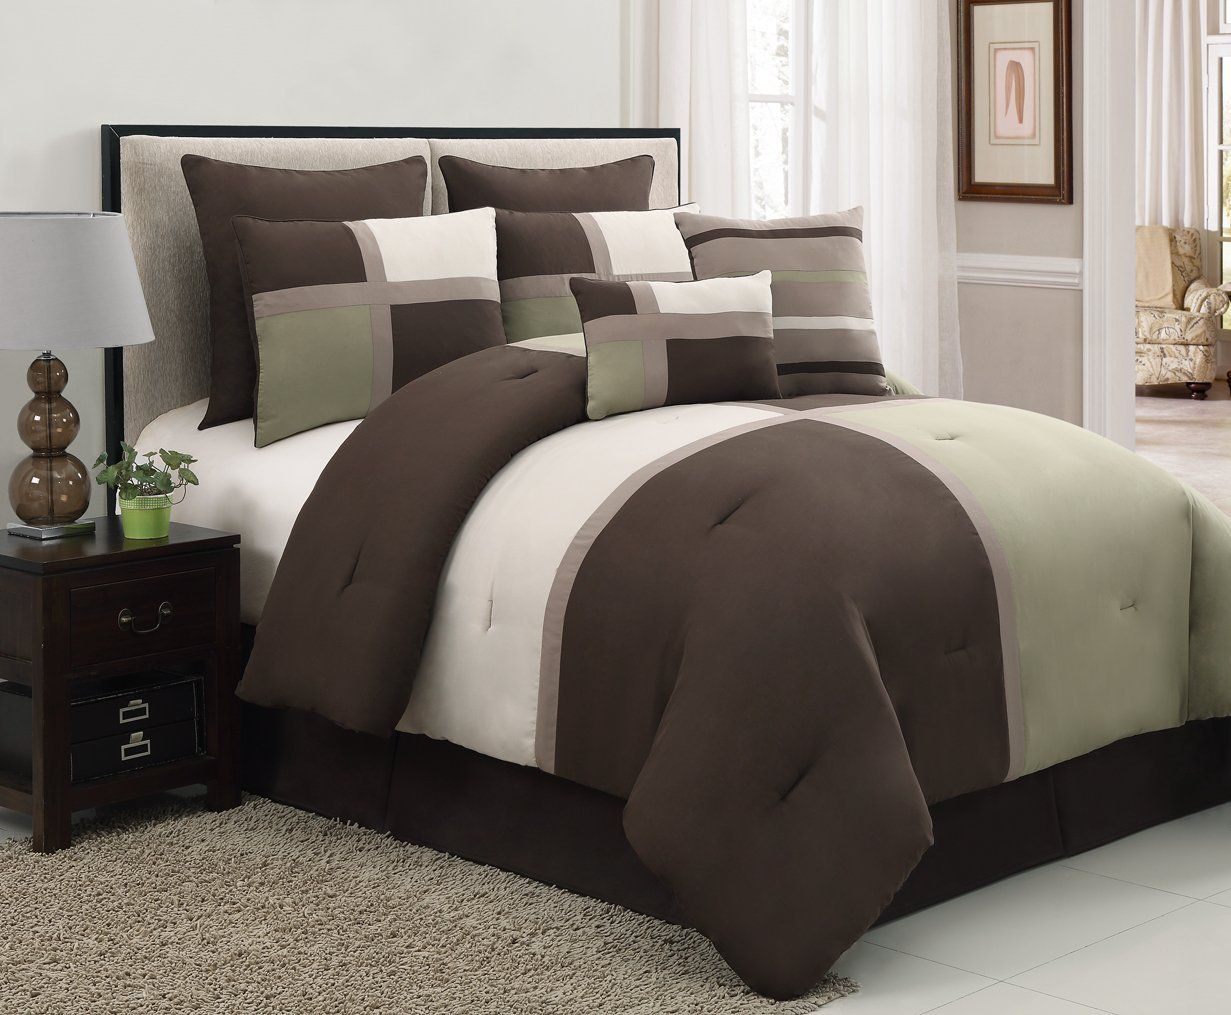 Contemporary Bedding Sets For Men